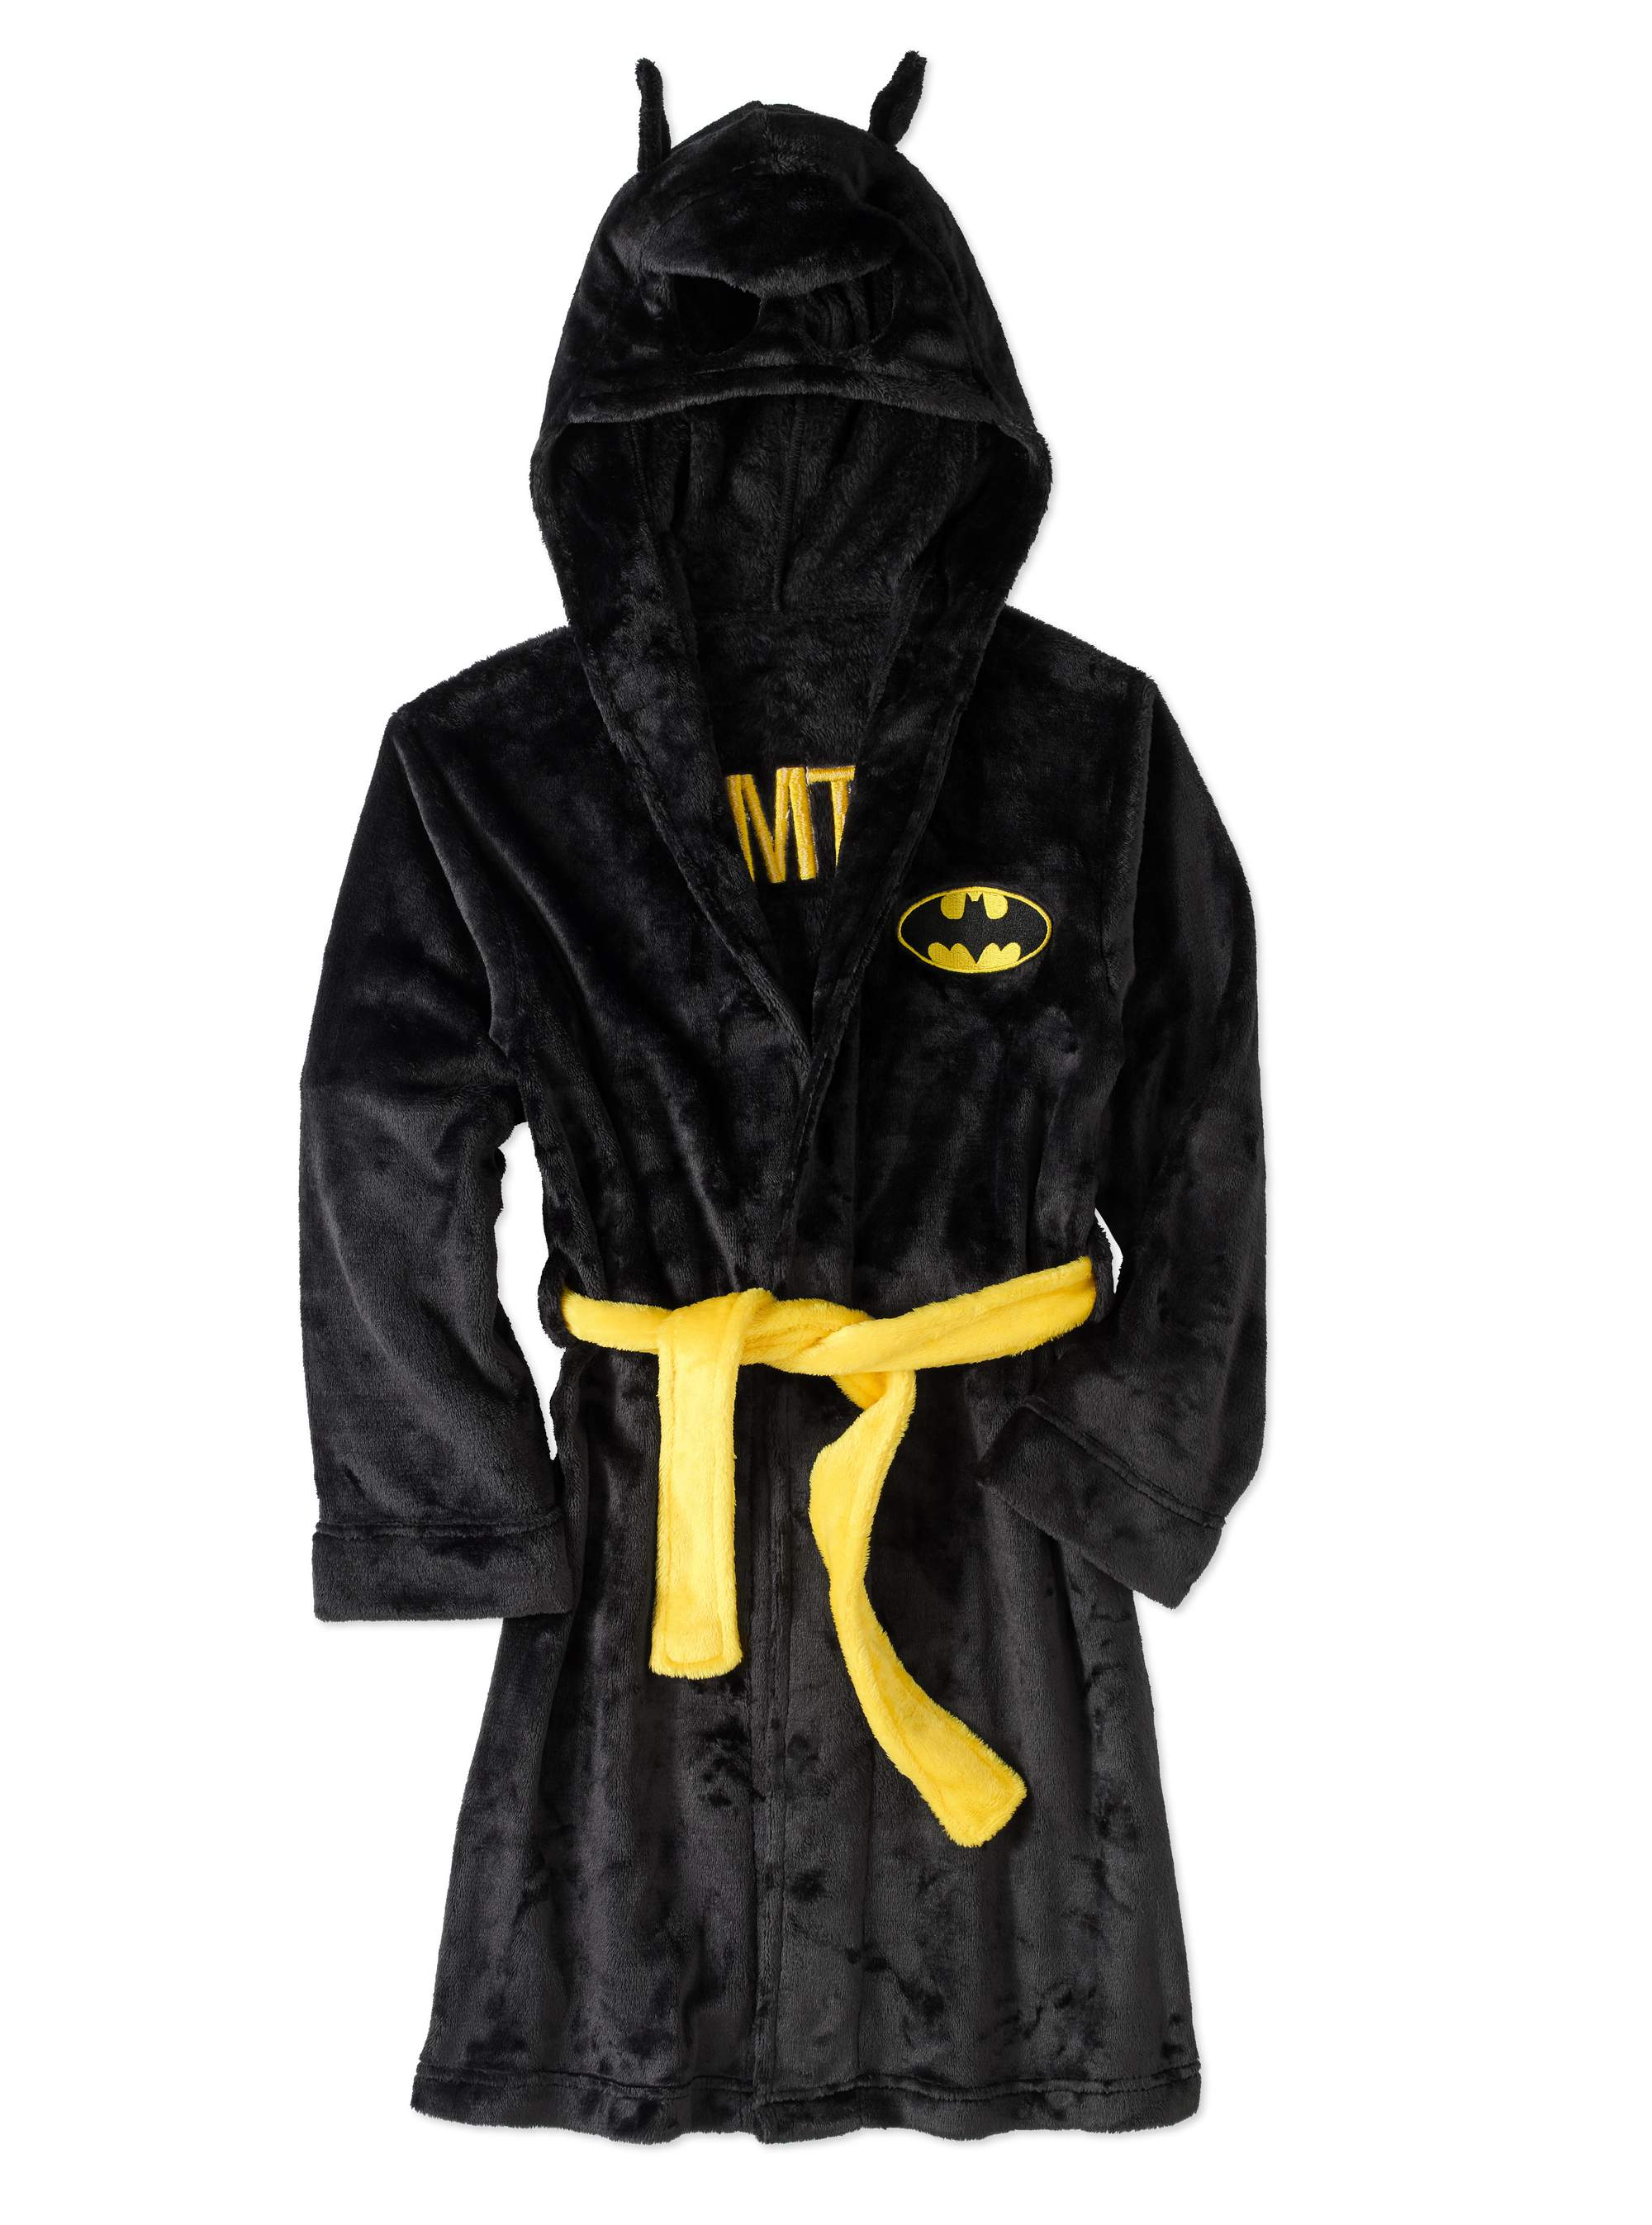 Batman Boys' Hooded Robe with Mask by Komar Kids